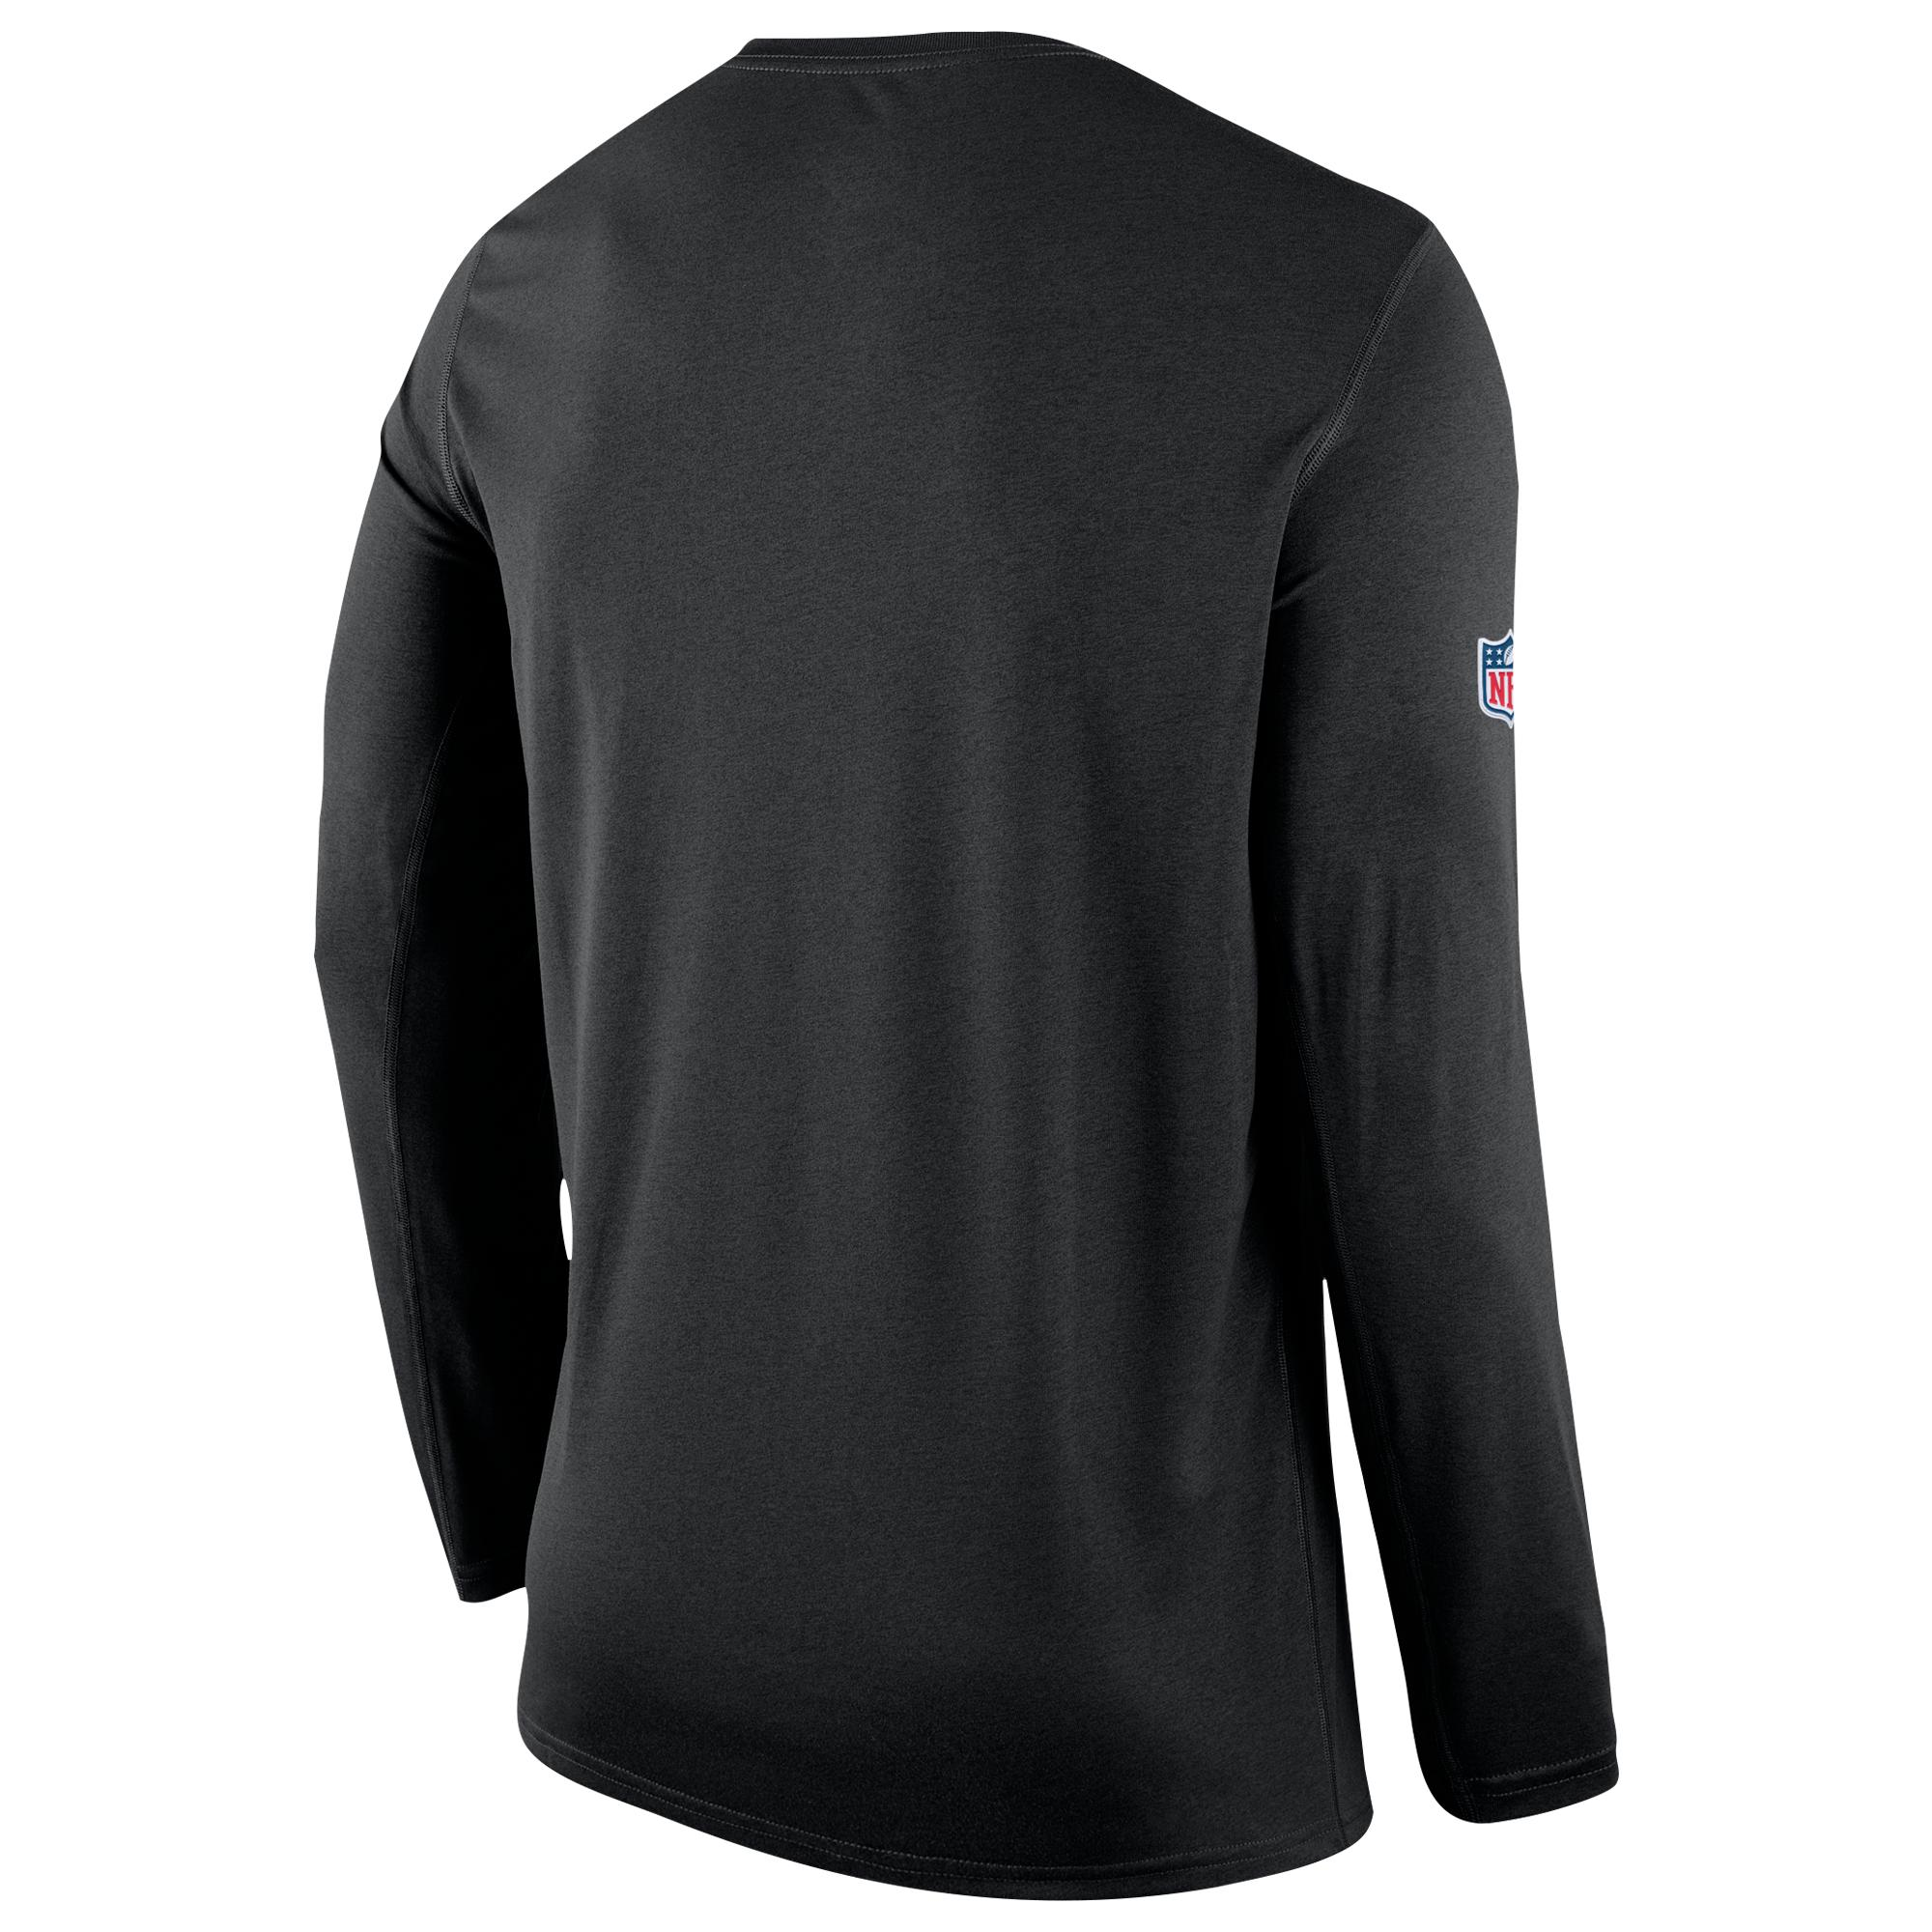 1cab1230 Nike Carolina Panthers Nfl Onfield Sideline L/s Seismic T-shirt in ...